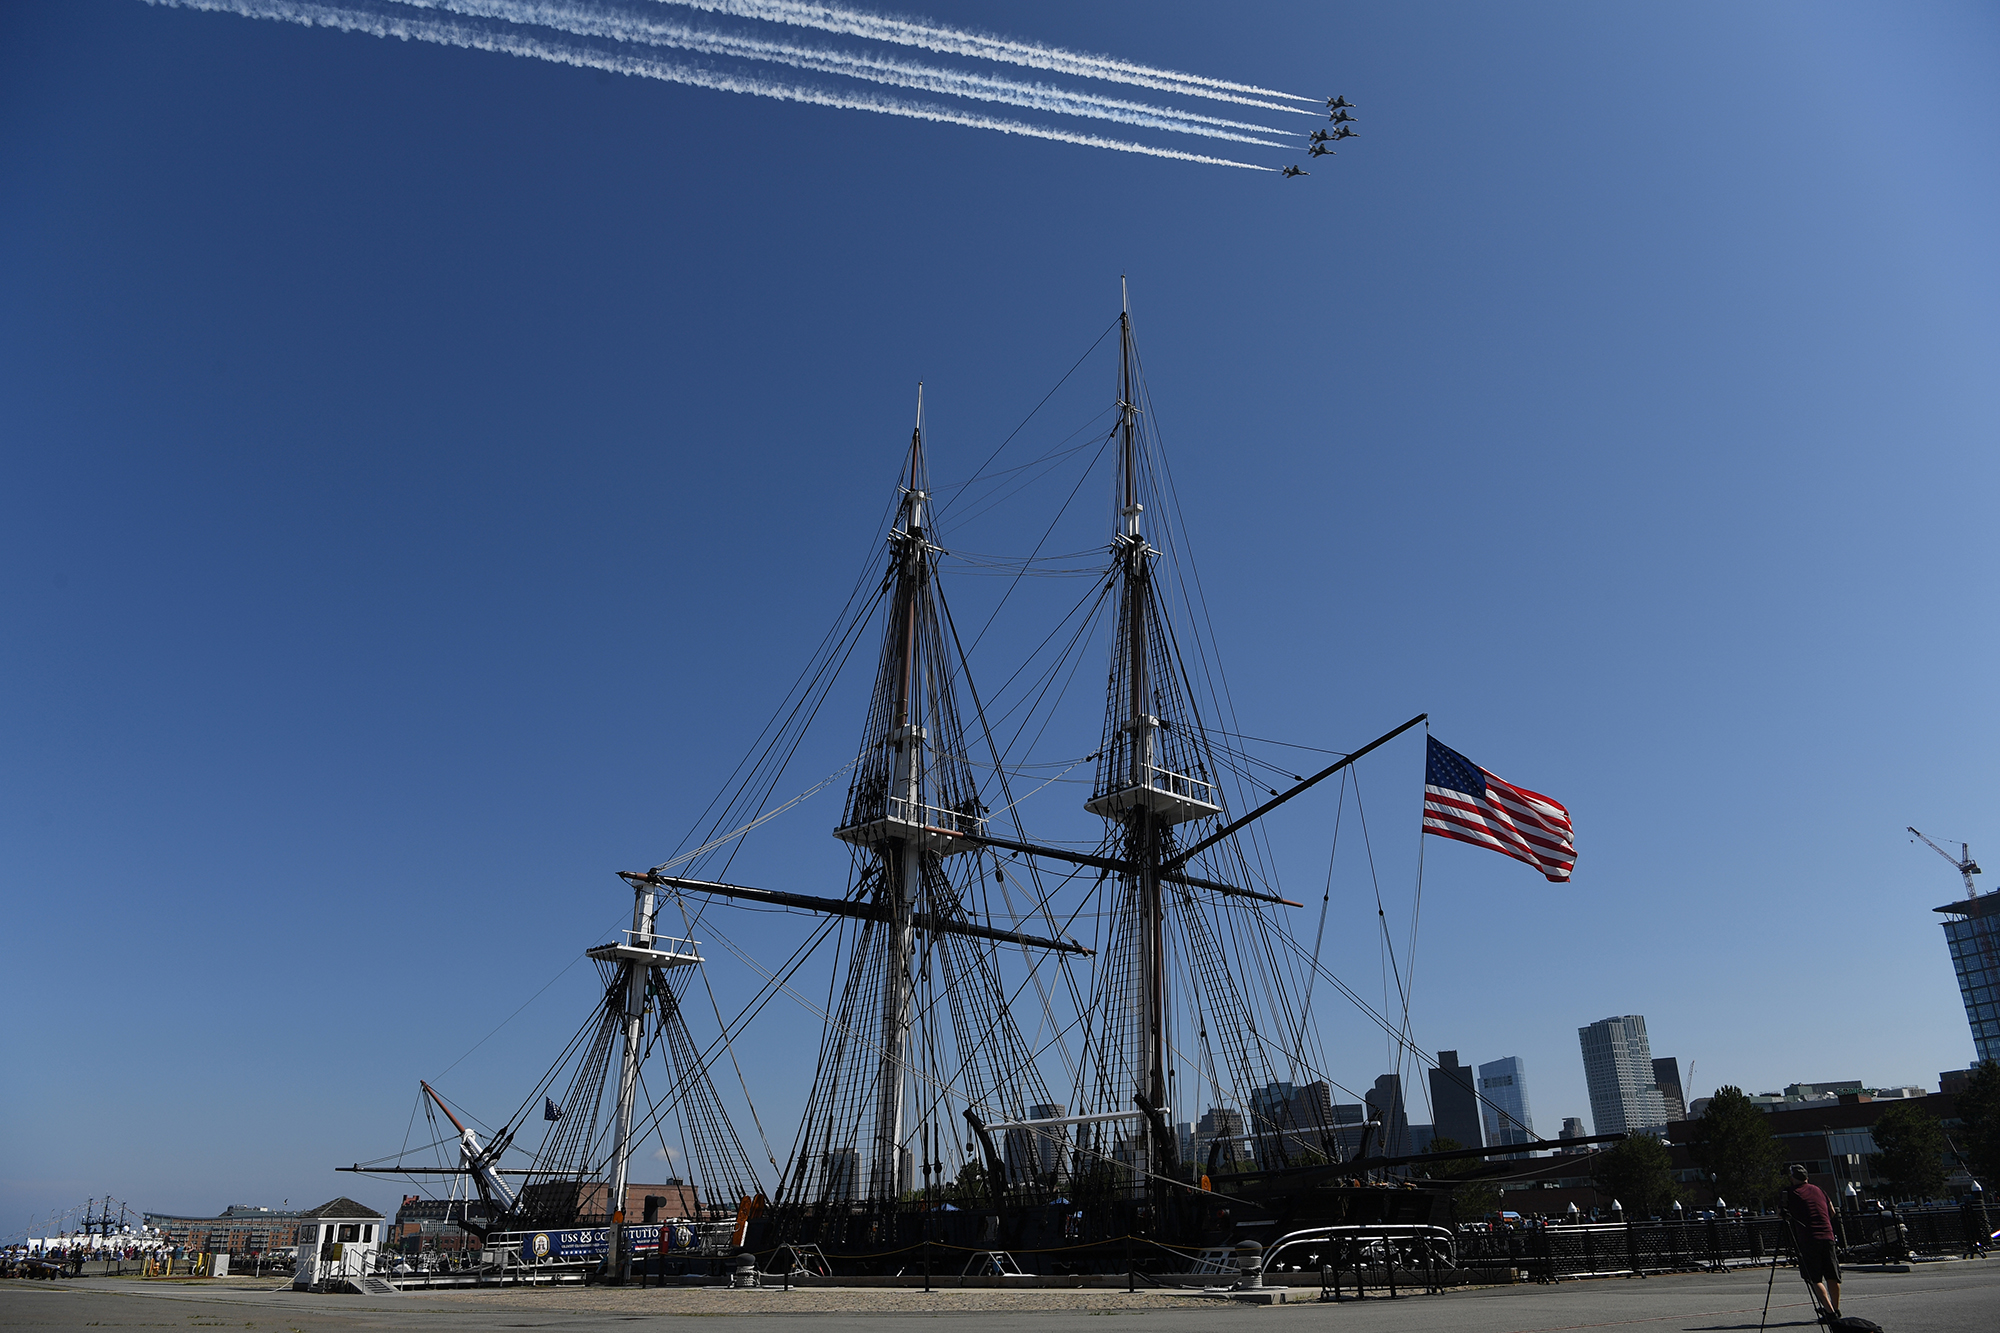 The U.S. Air Force Thunderbirds fly over the USS Constitution in Boston Harbor during a